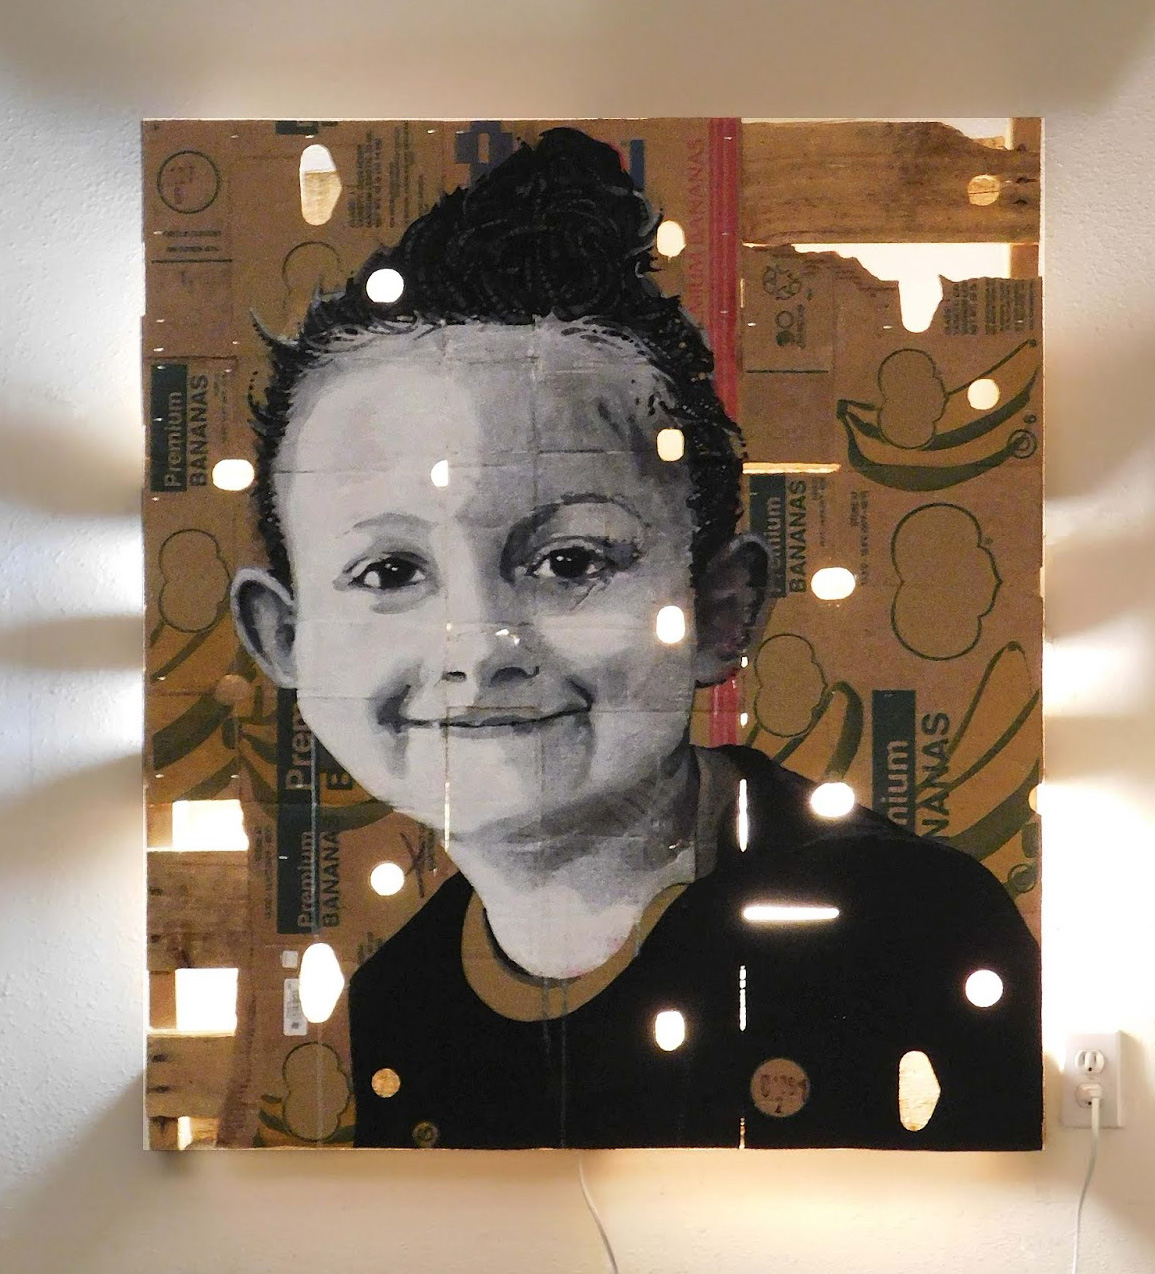 portrait of a child on a cardboard box with light shining through it.